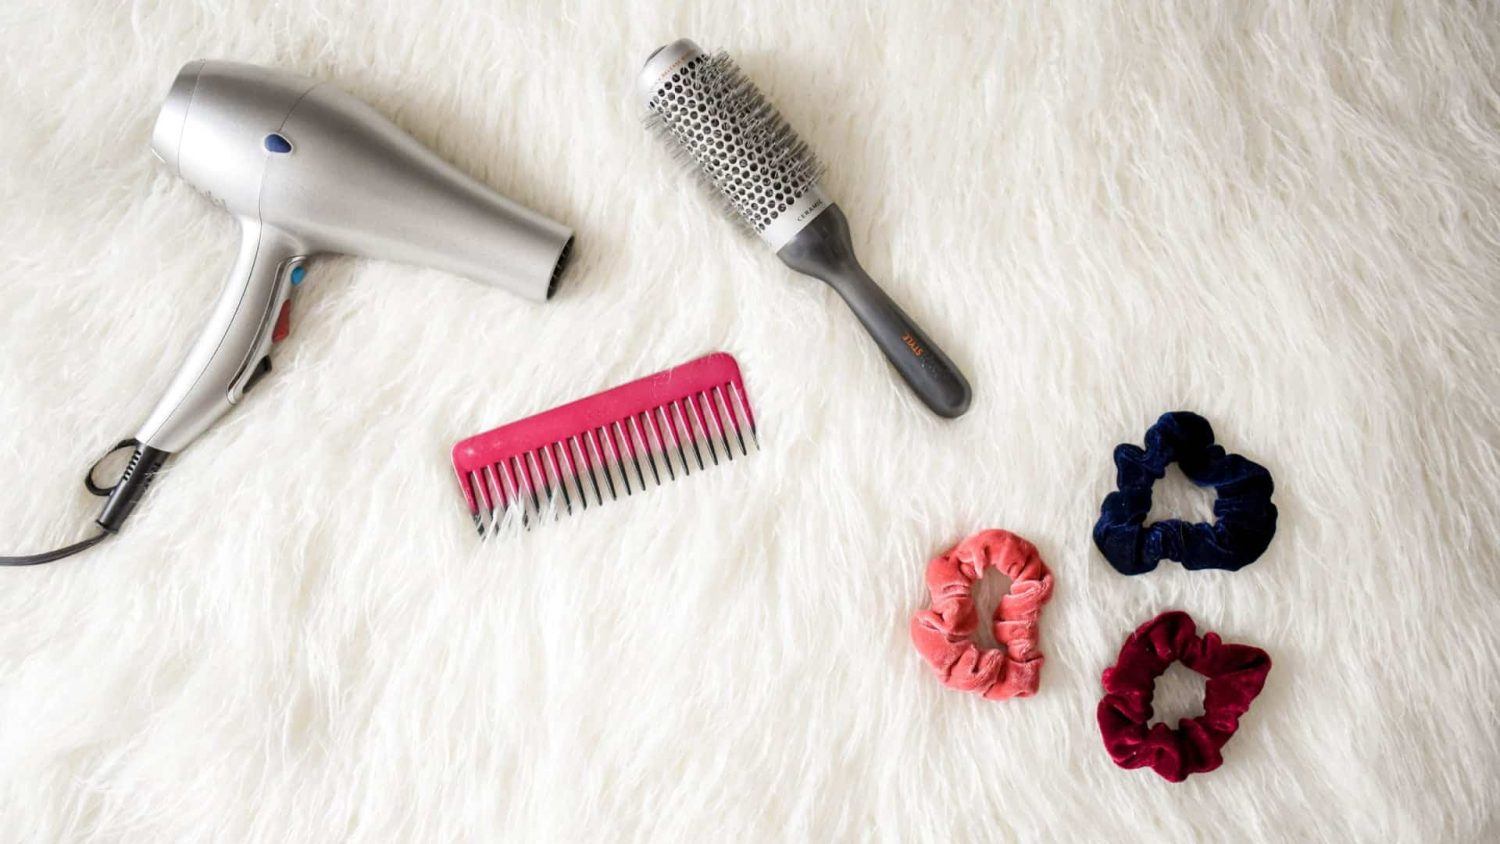 Hair Dryer or Hair Straightener – Which is Better?